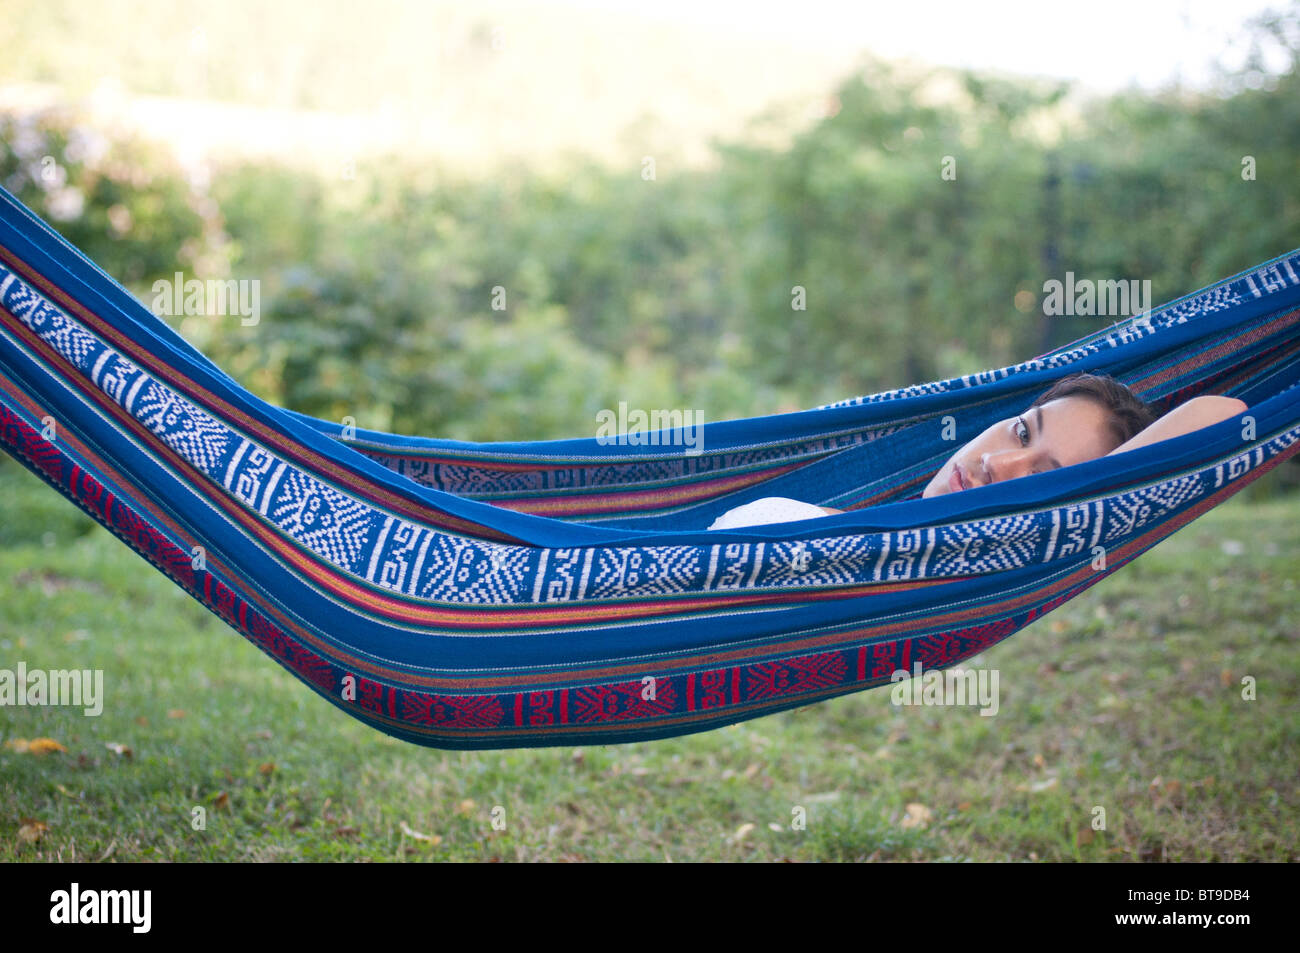 A young woman lying in a hammock in a garden - Stock Image